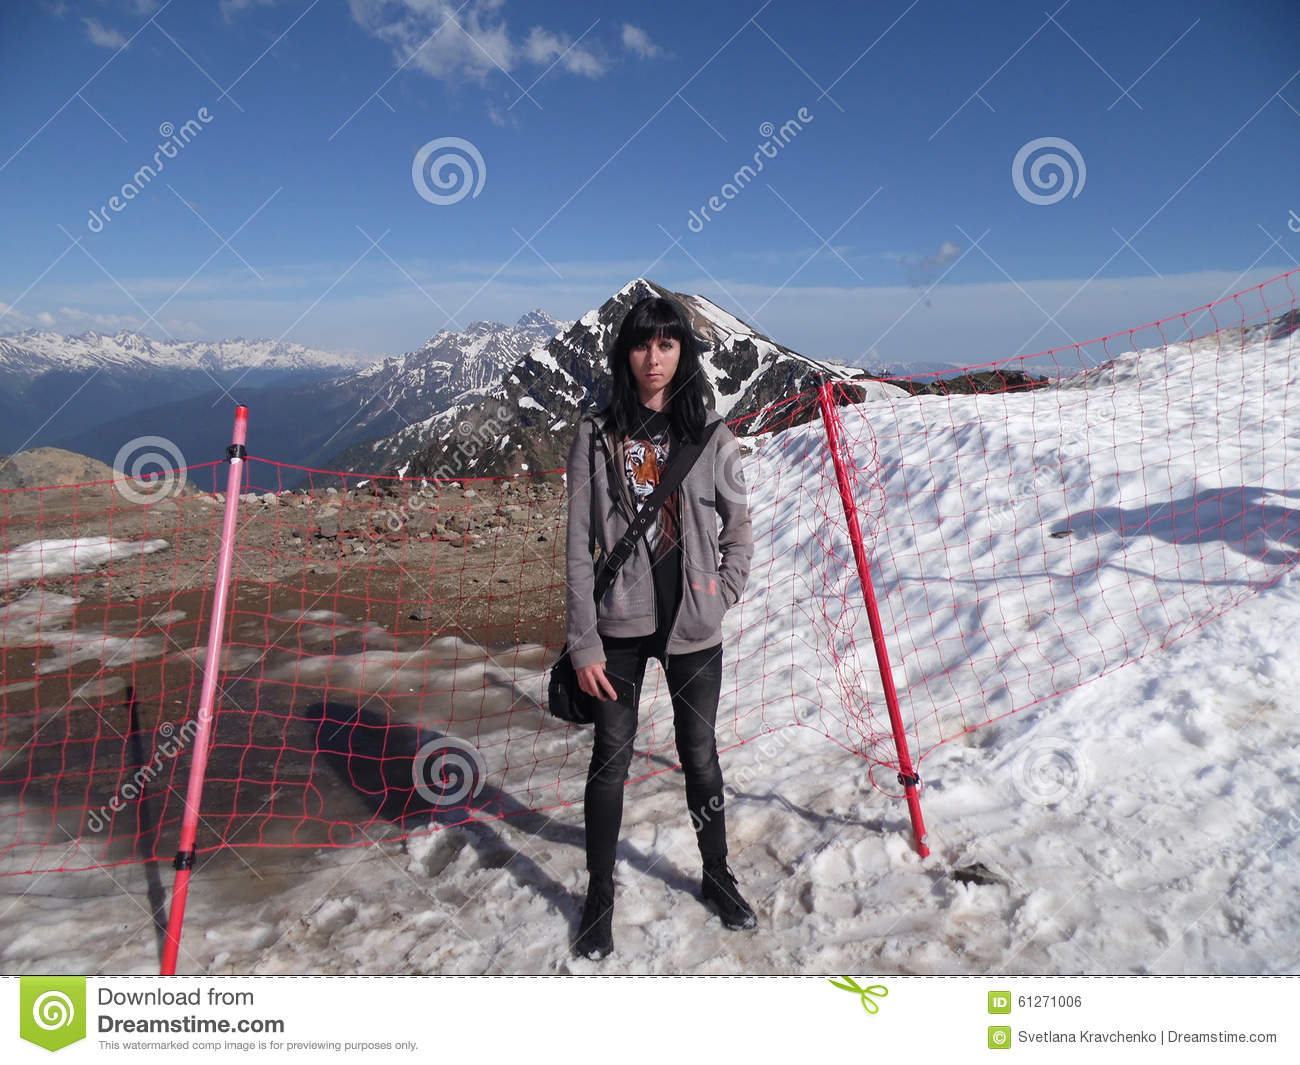 Girl on the top of the mountain, snowy peaks and blue sky